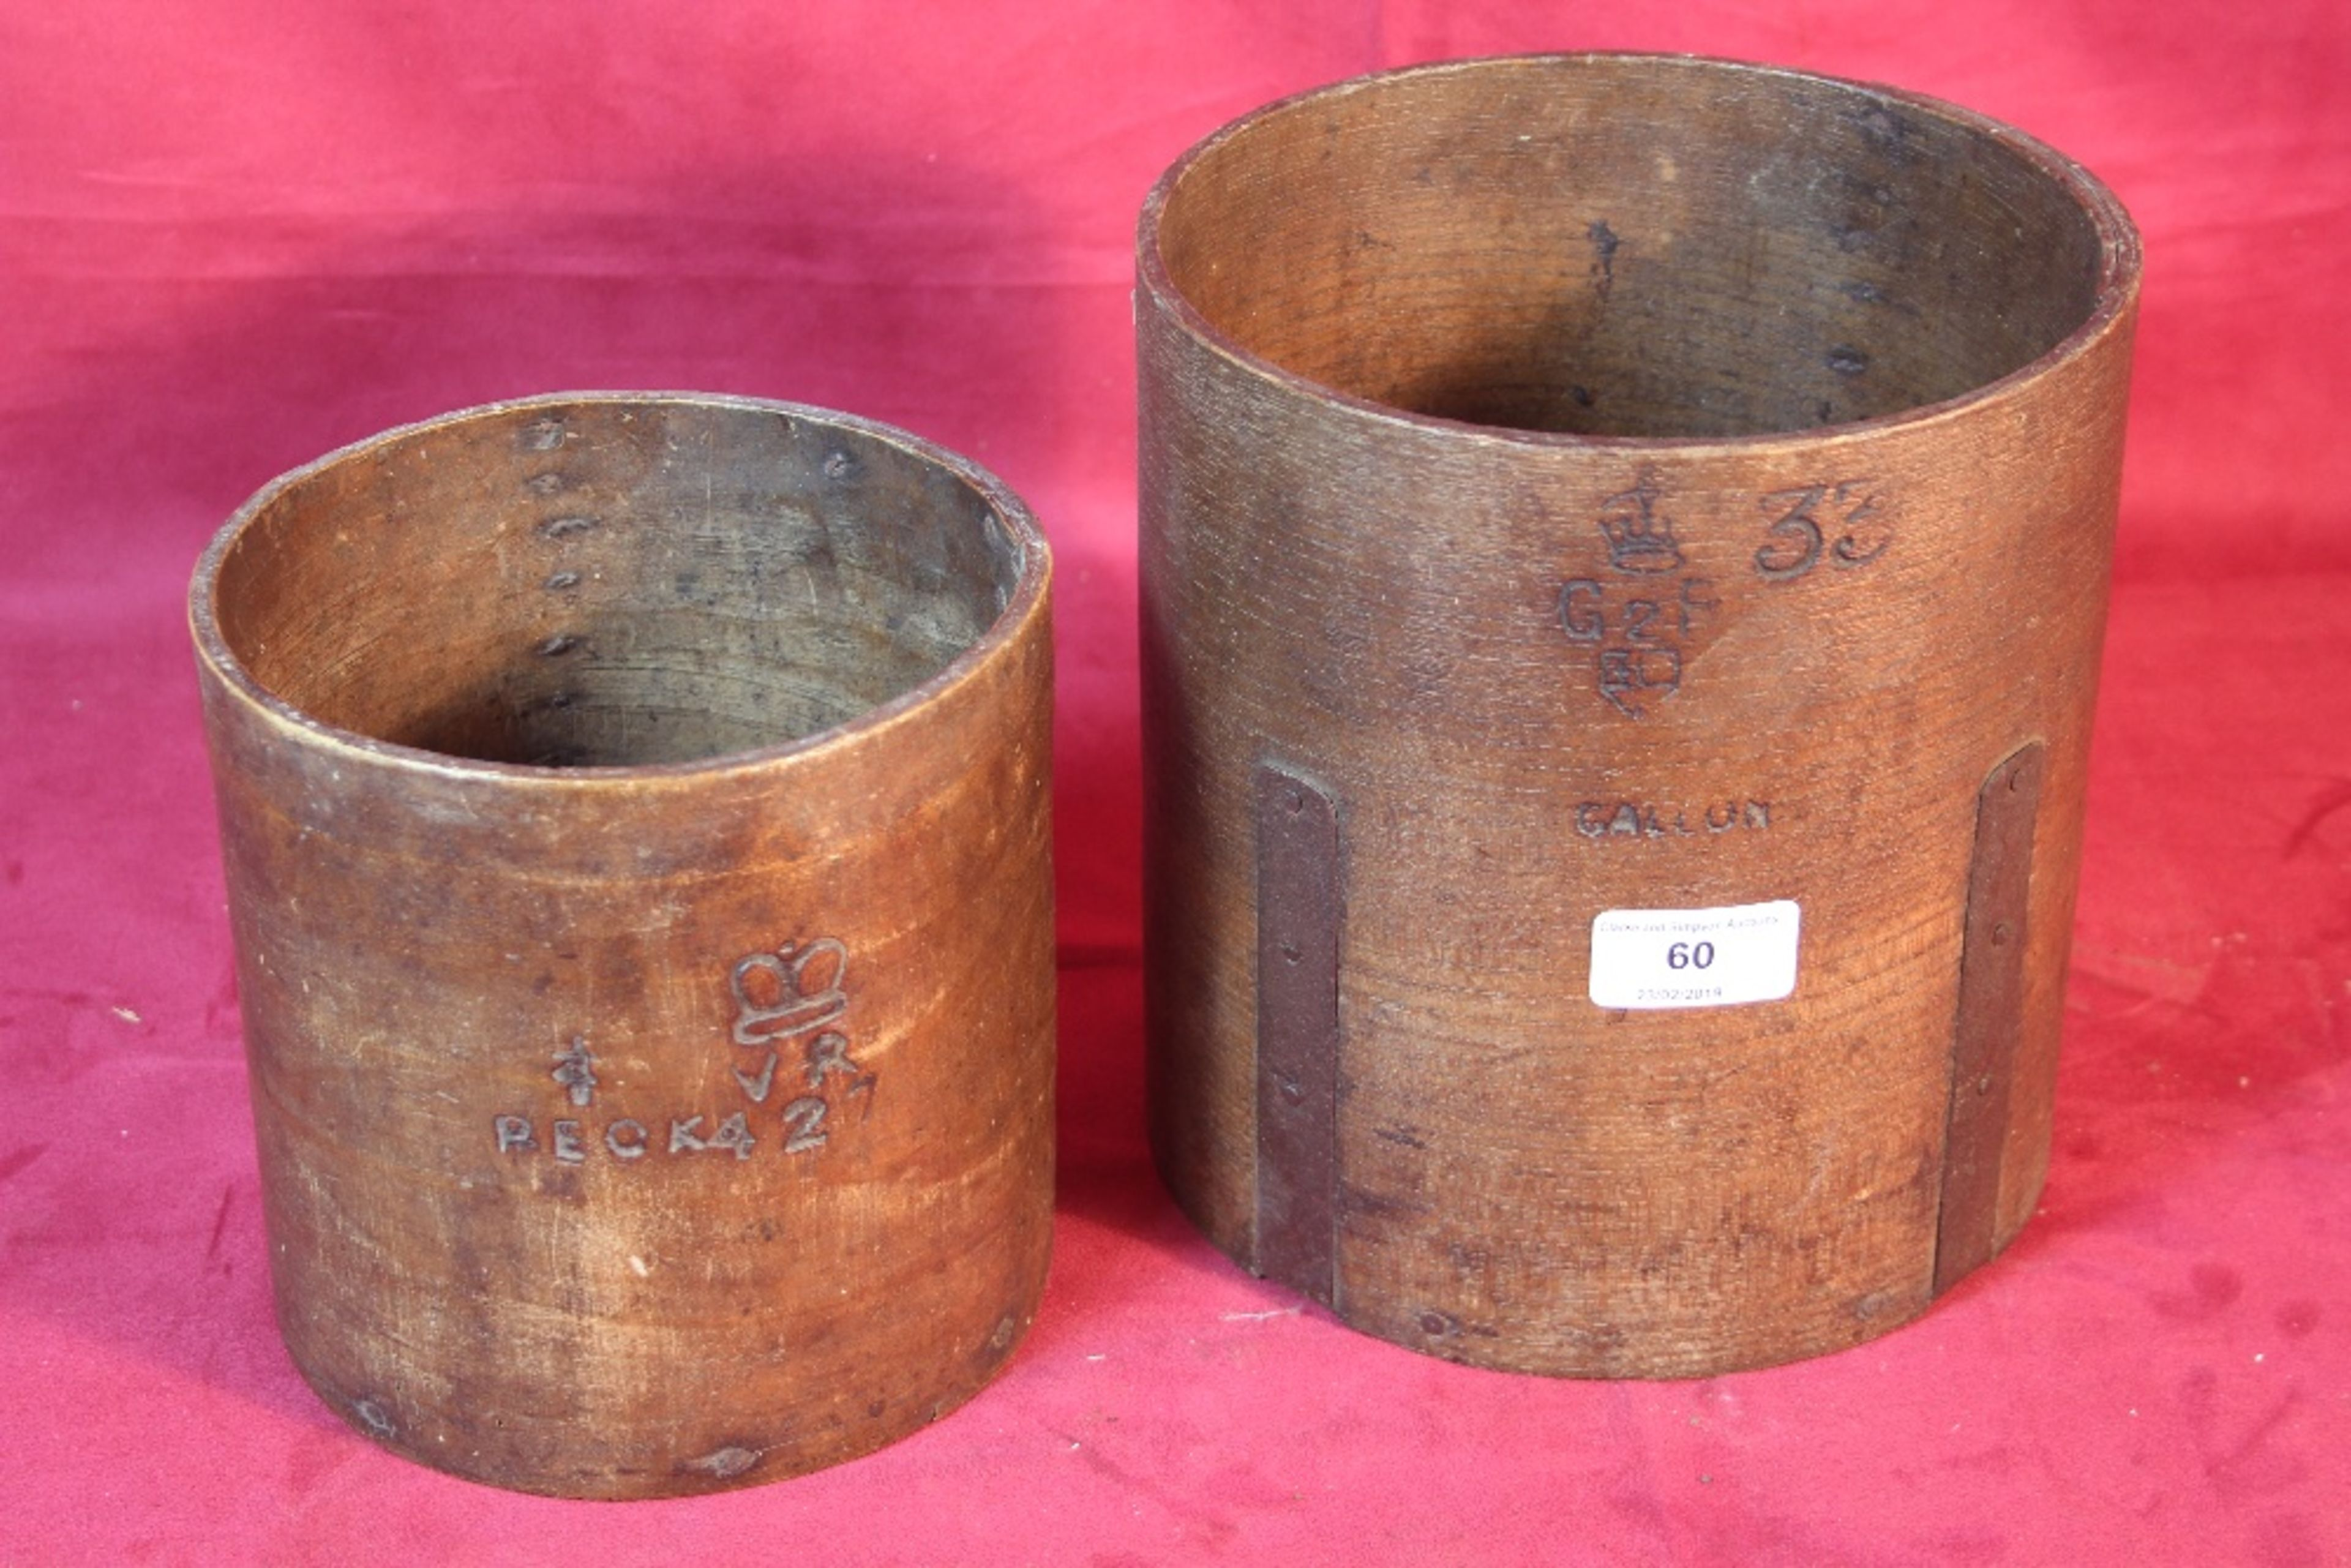 Lot 60 - Two old wooden measures